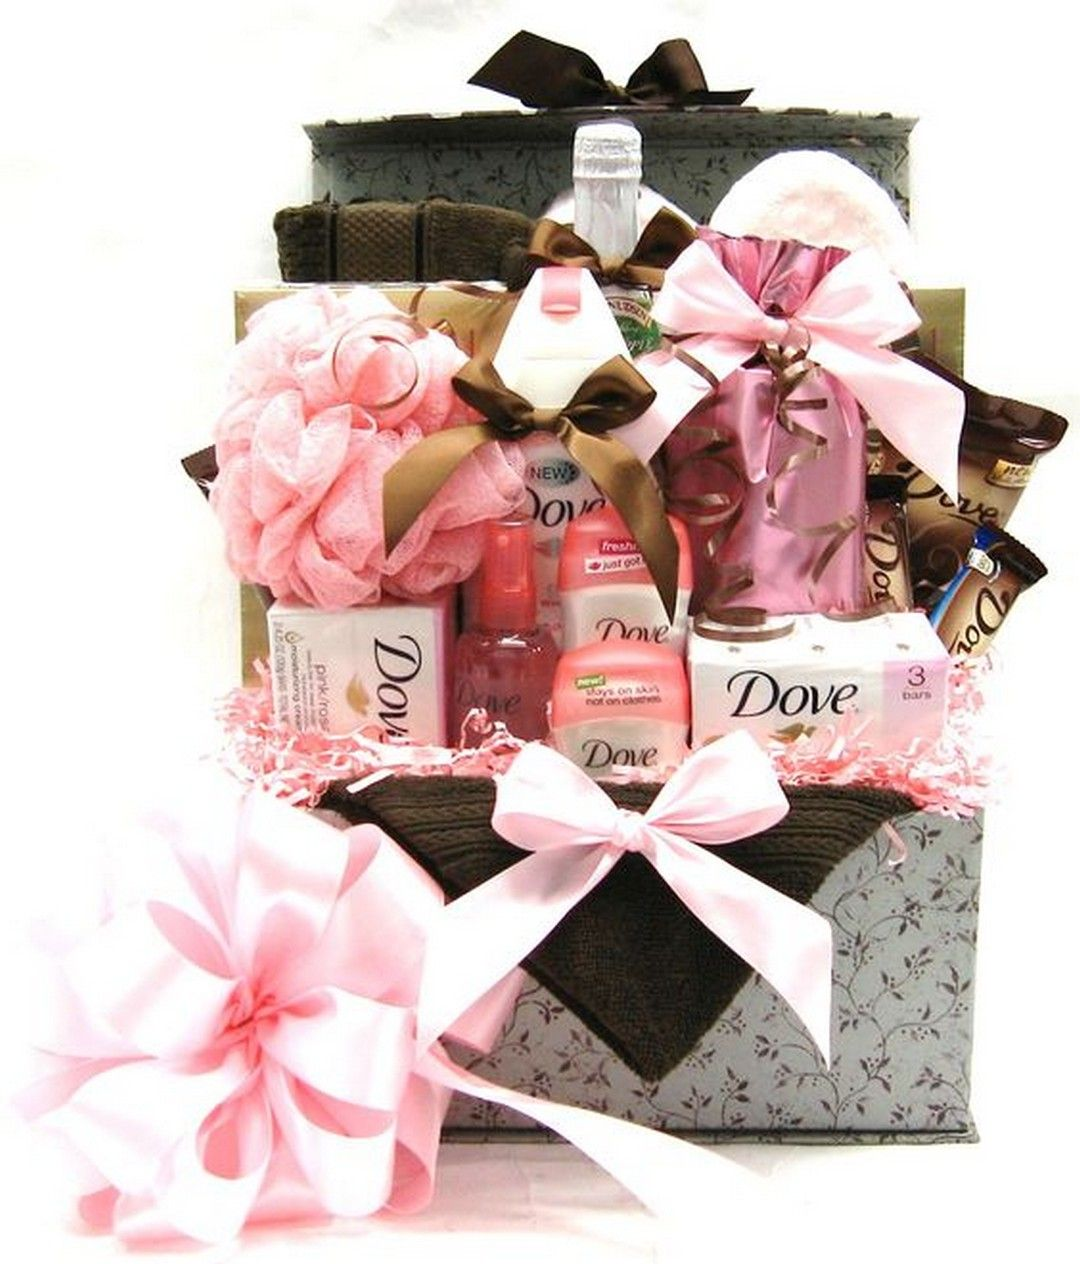 How To Easily Make Aesthetic Bathroom Gift Basket Designs Goodnewsarchitecture Bathroom Gifts Beauty Gift Basket Mother S Day Gift Baskets